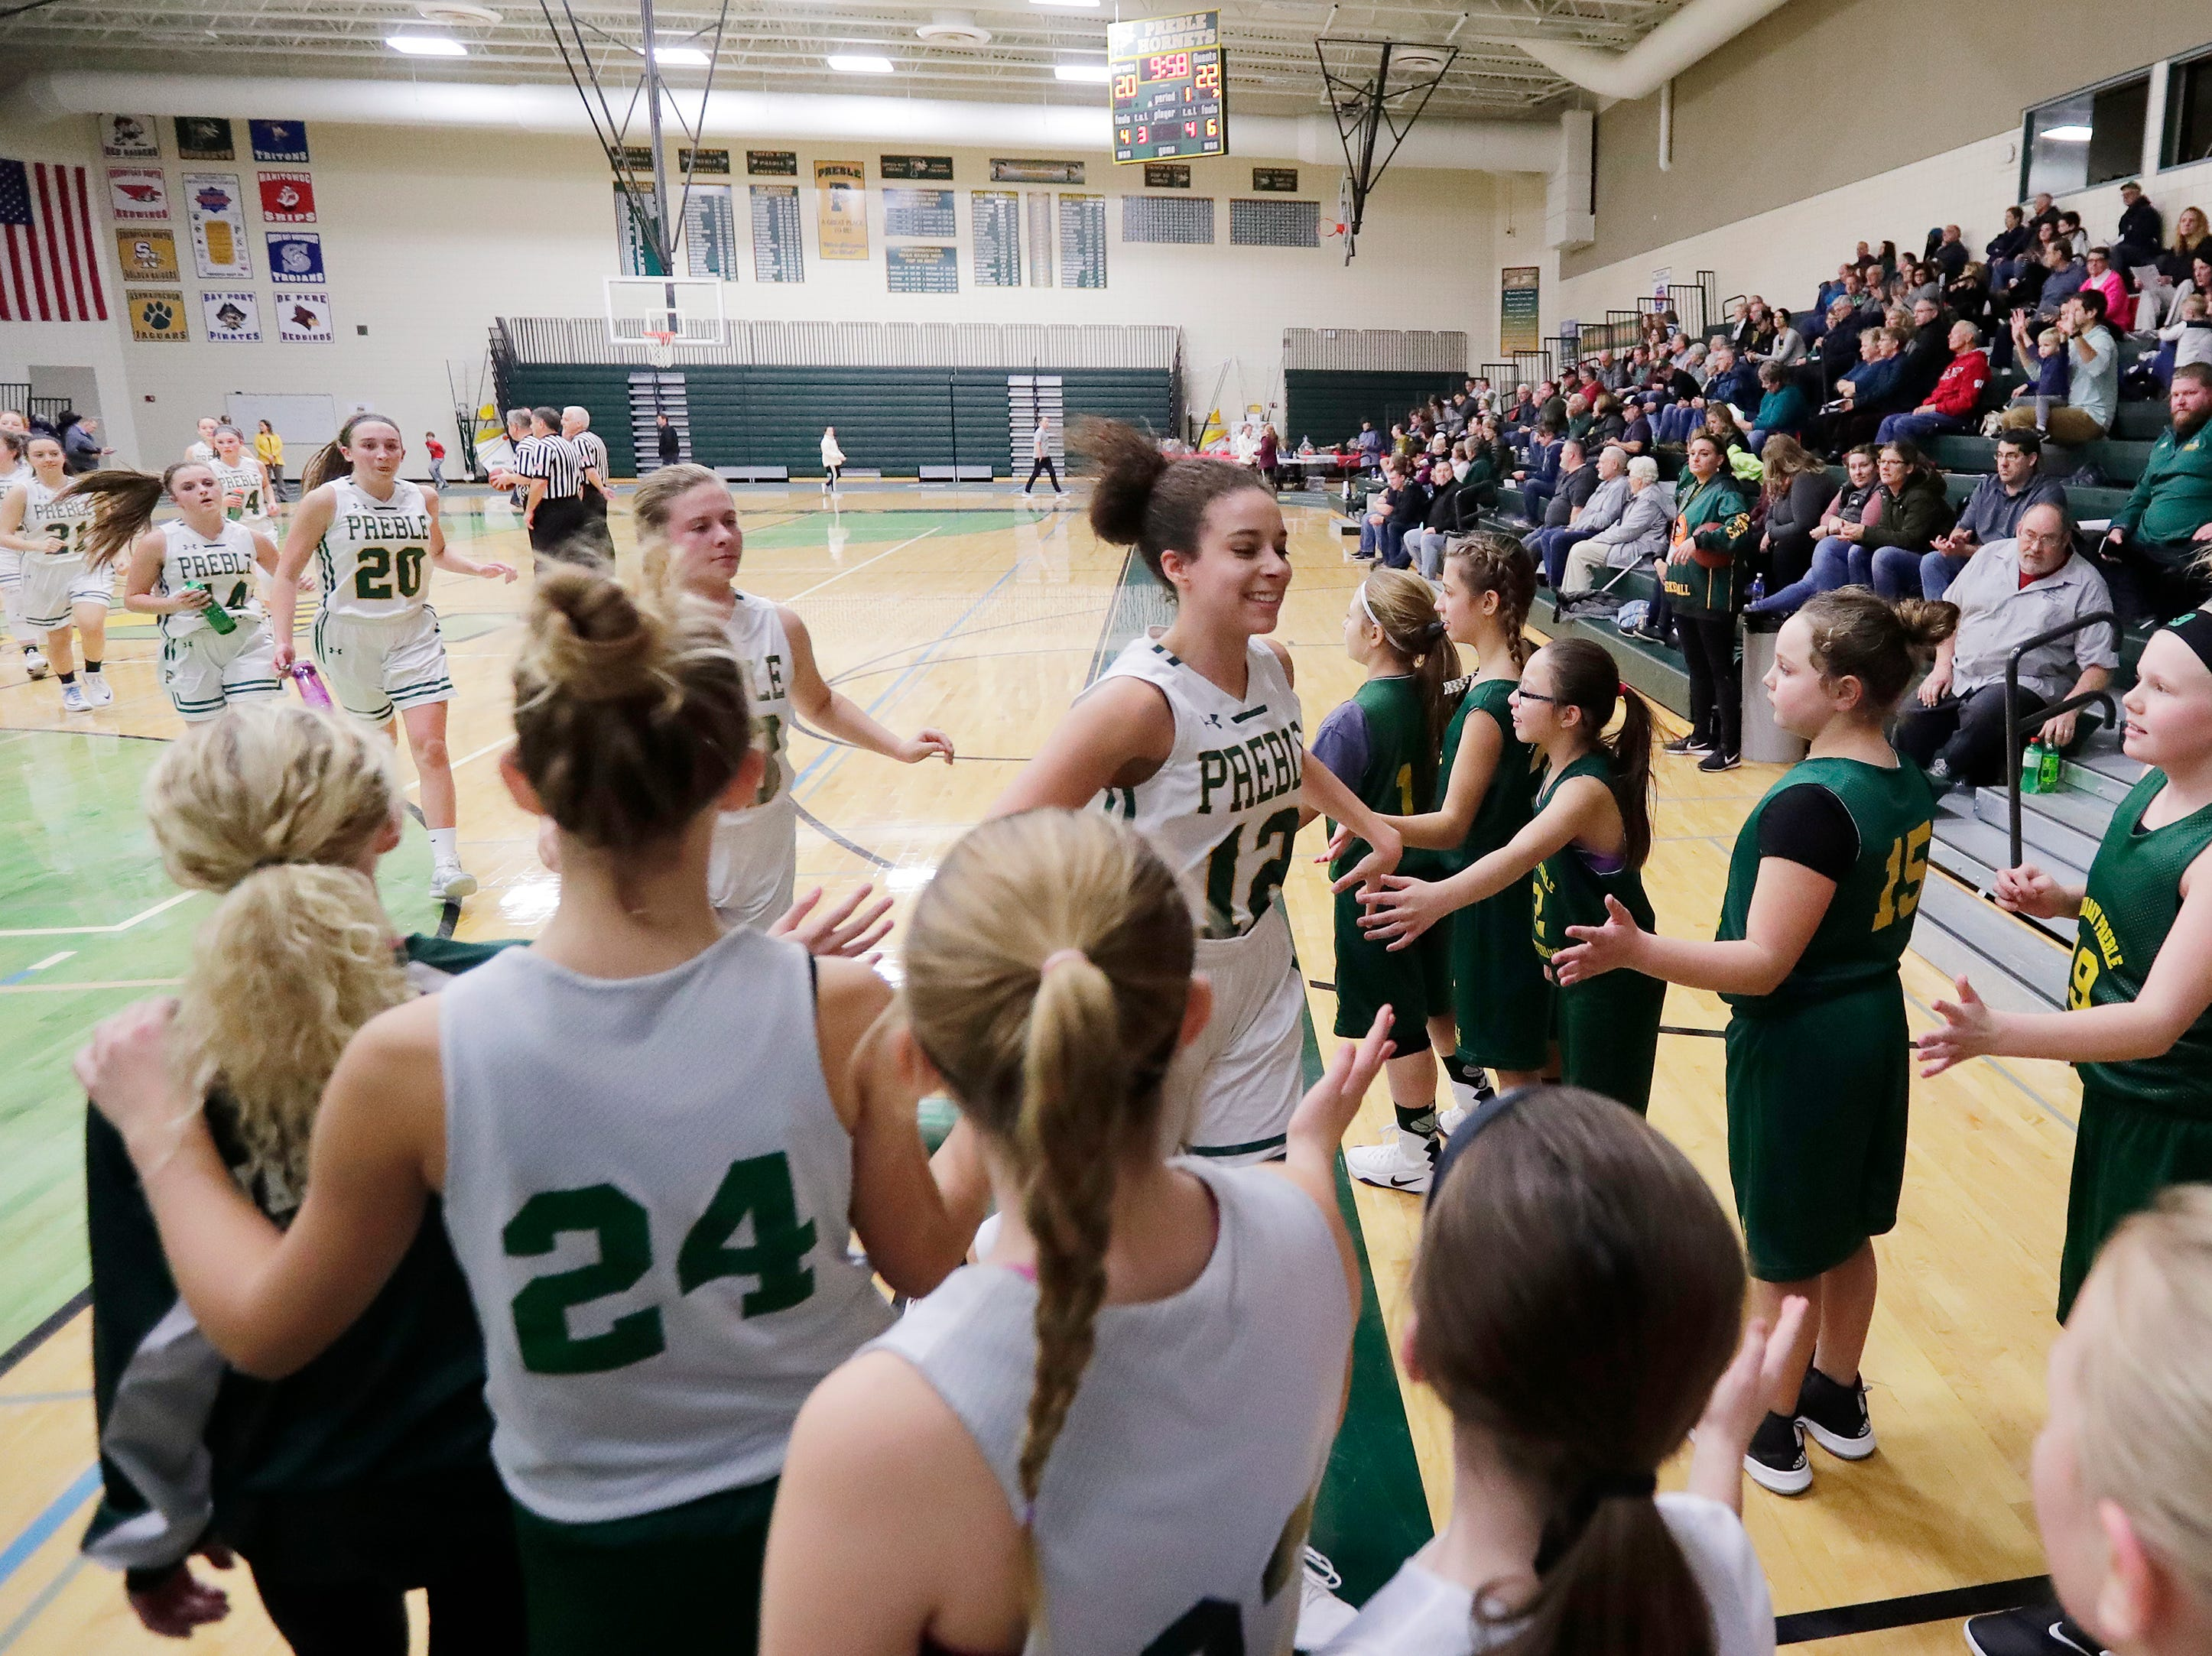 Green Bay Preble players leave the court at half time against De Pere in a girls basketball game at Preble high school on Tuesday, January 8, 2019 in Green Bay, Wis.